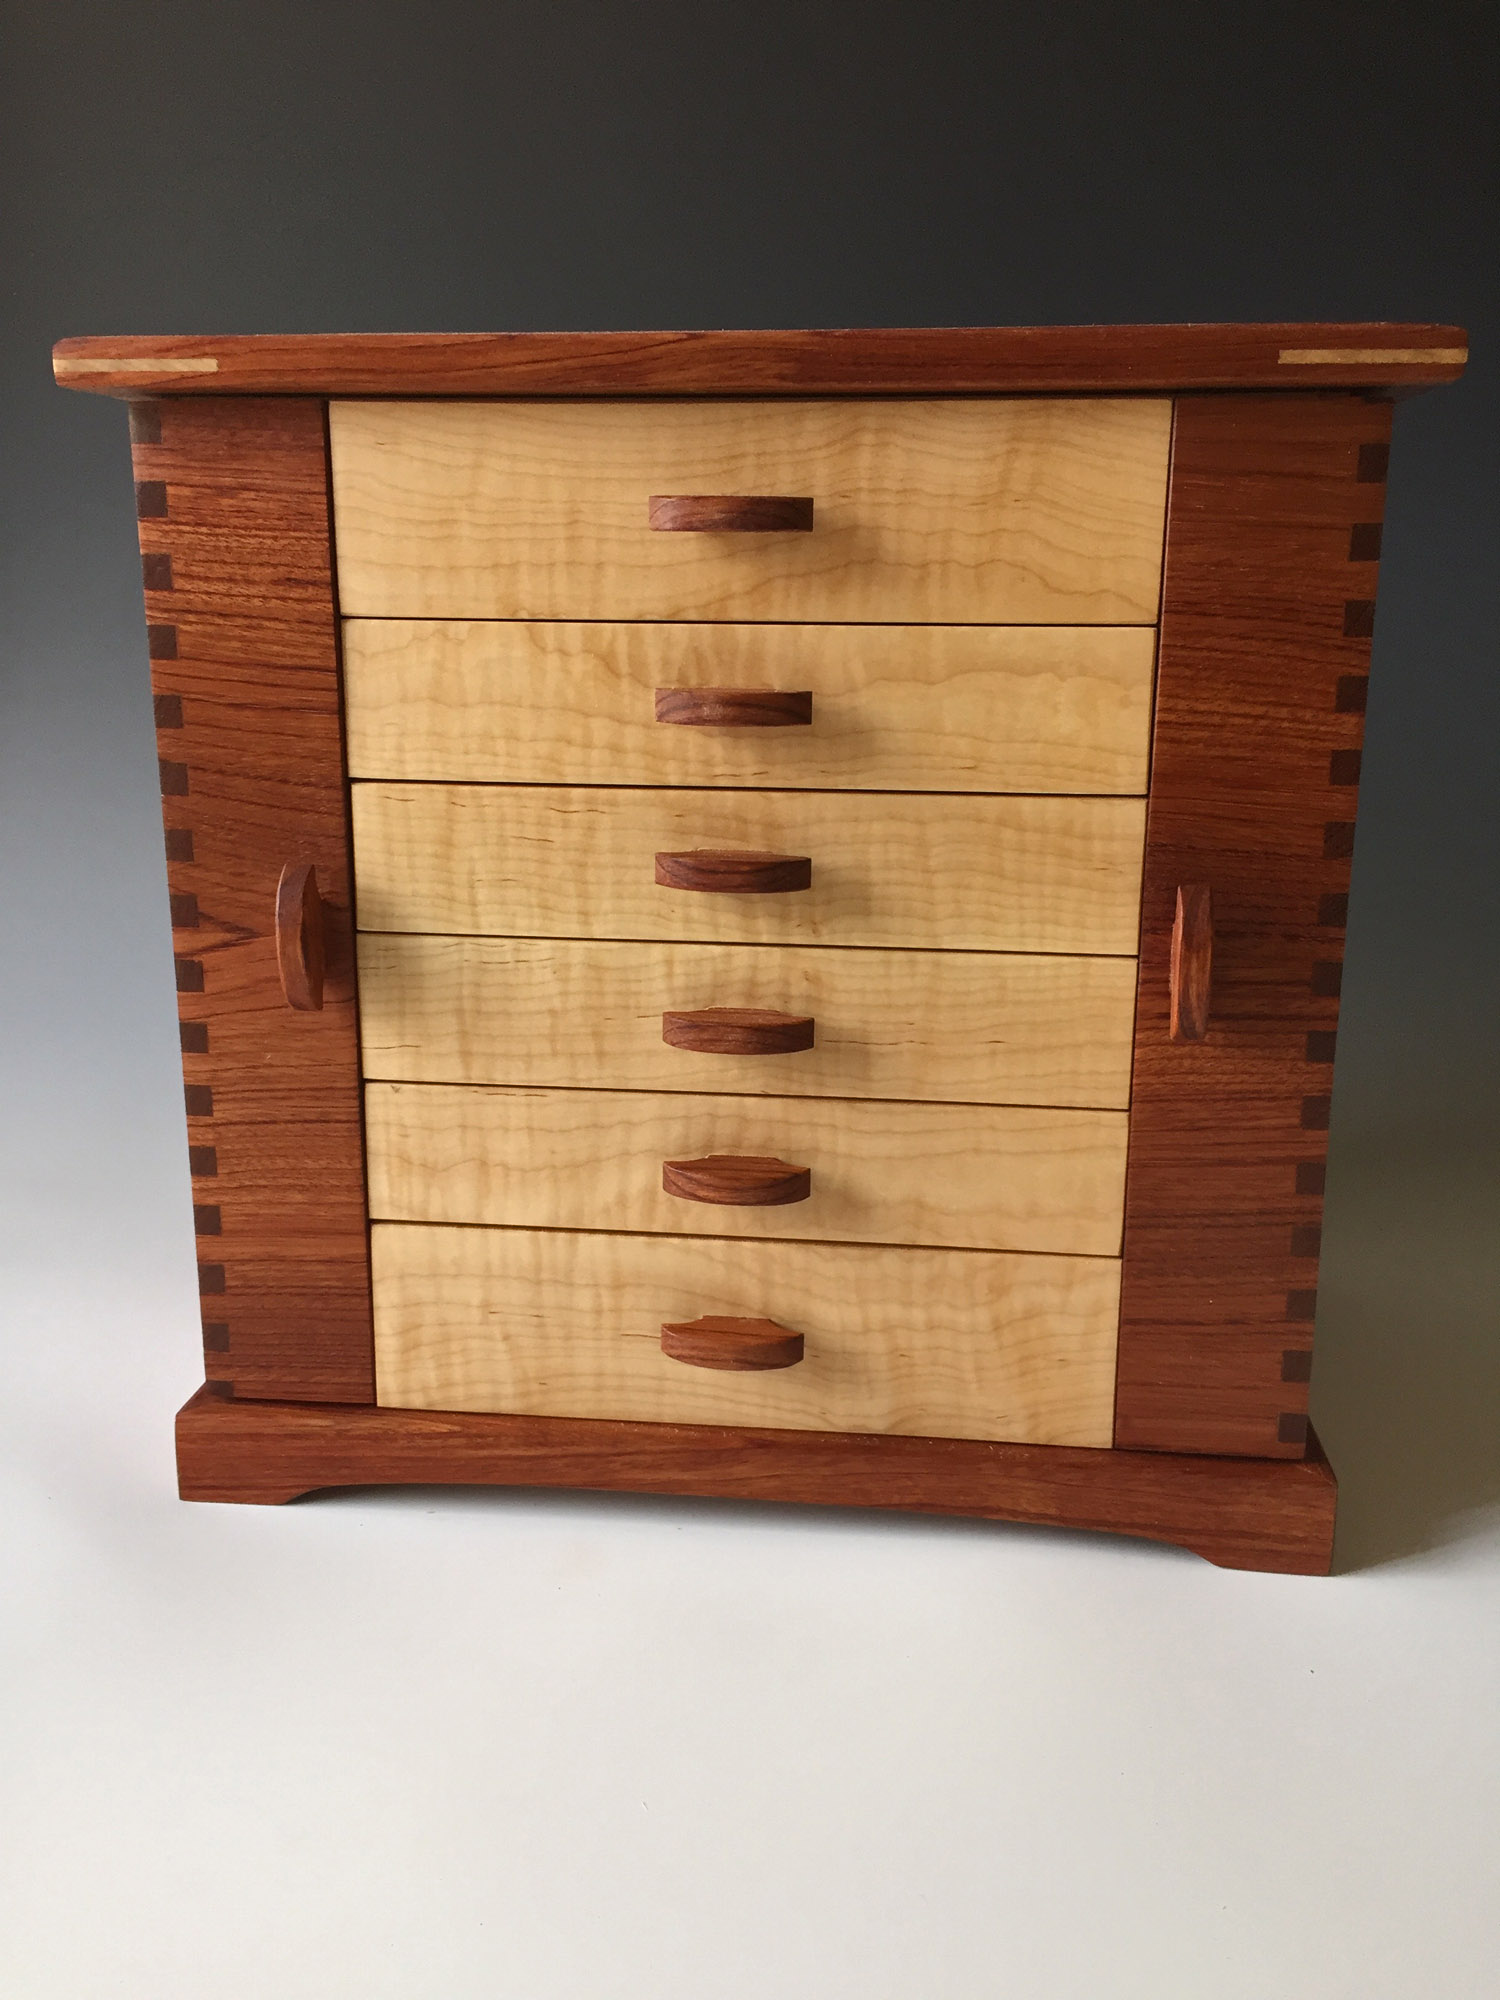 Photo of my standing jewelry box which I call the Swingdoor; made of bubinga and curly maple woods.